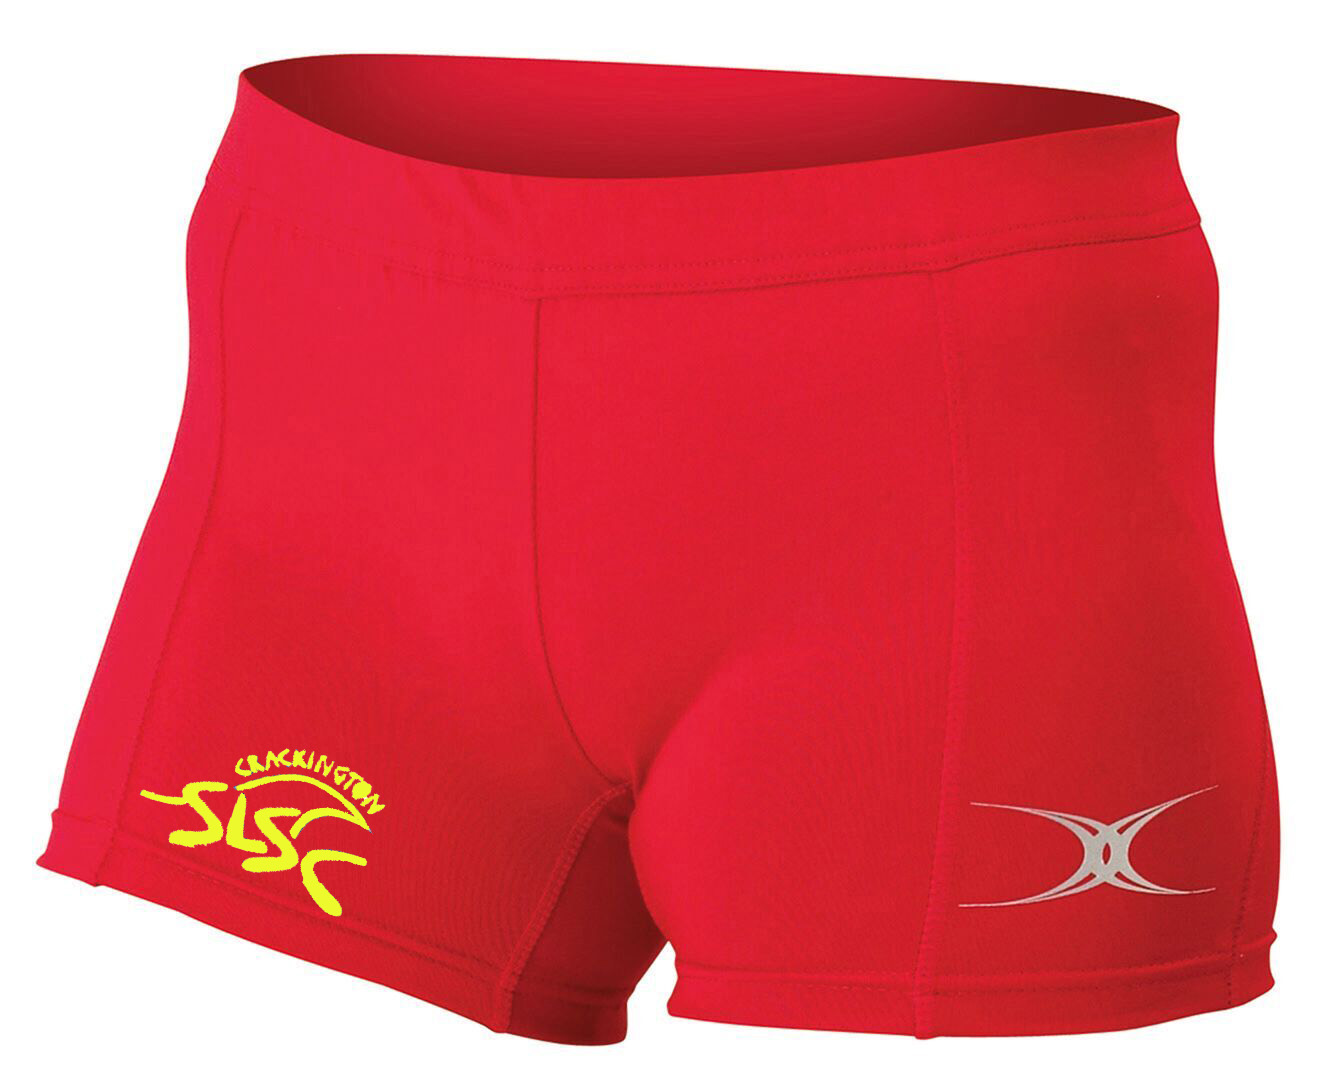 Crackington SLSC Ladies Beach Shorts